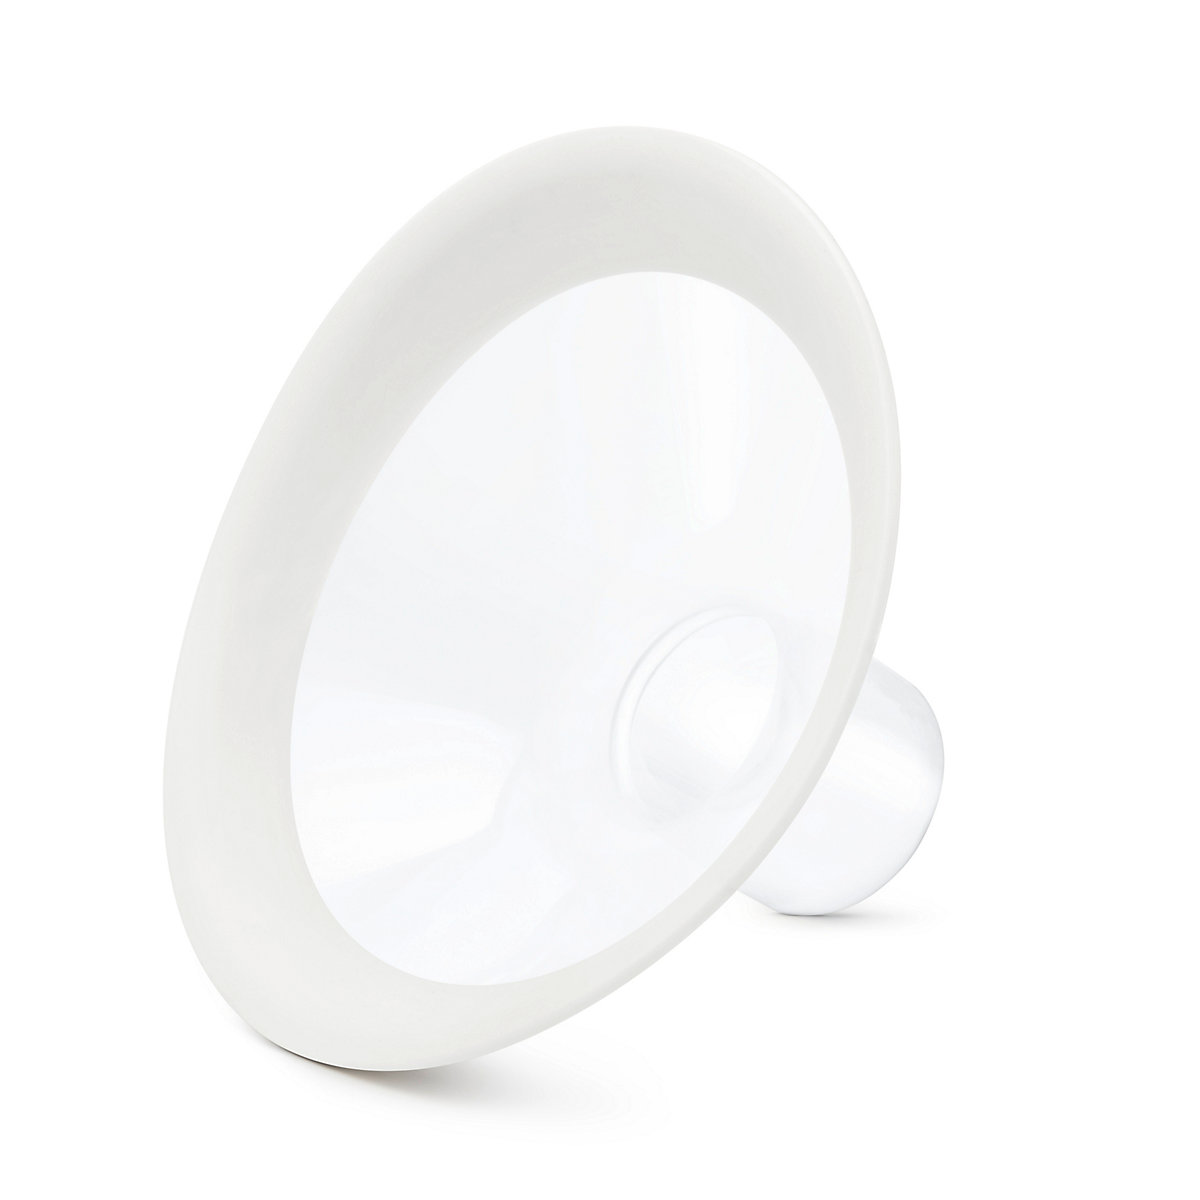 Medela personalfit flex breast shield - 27mm